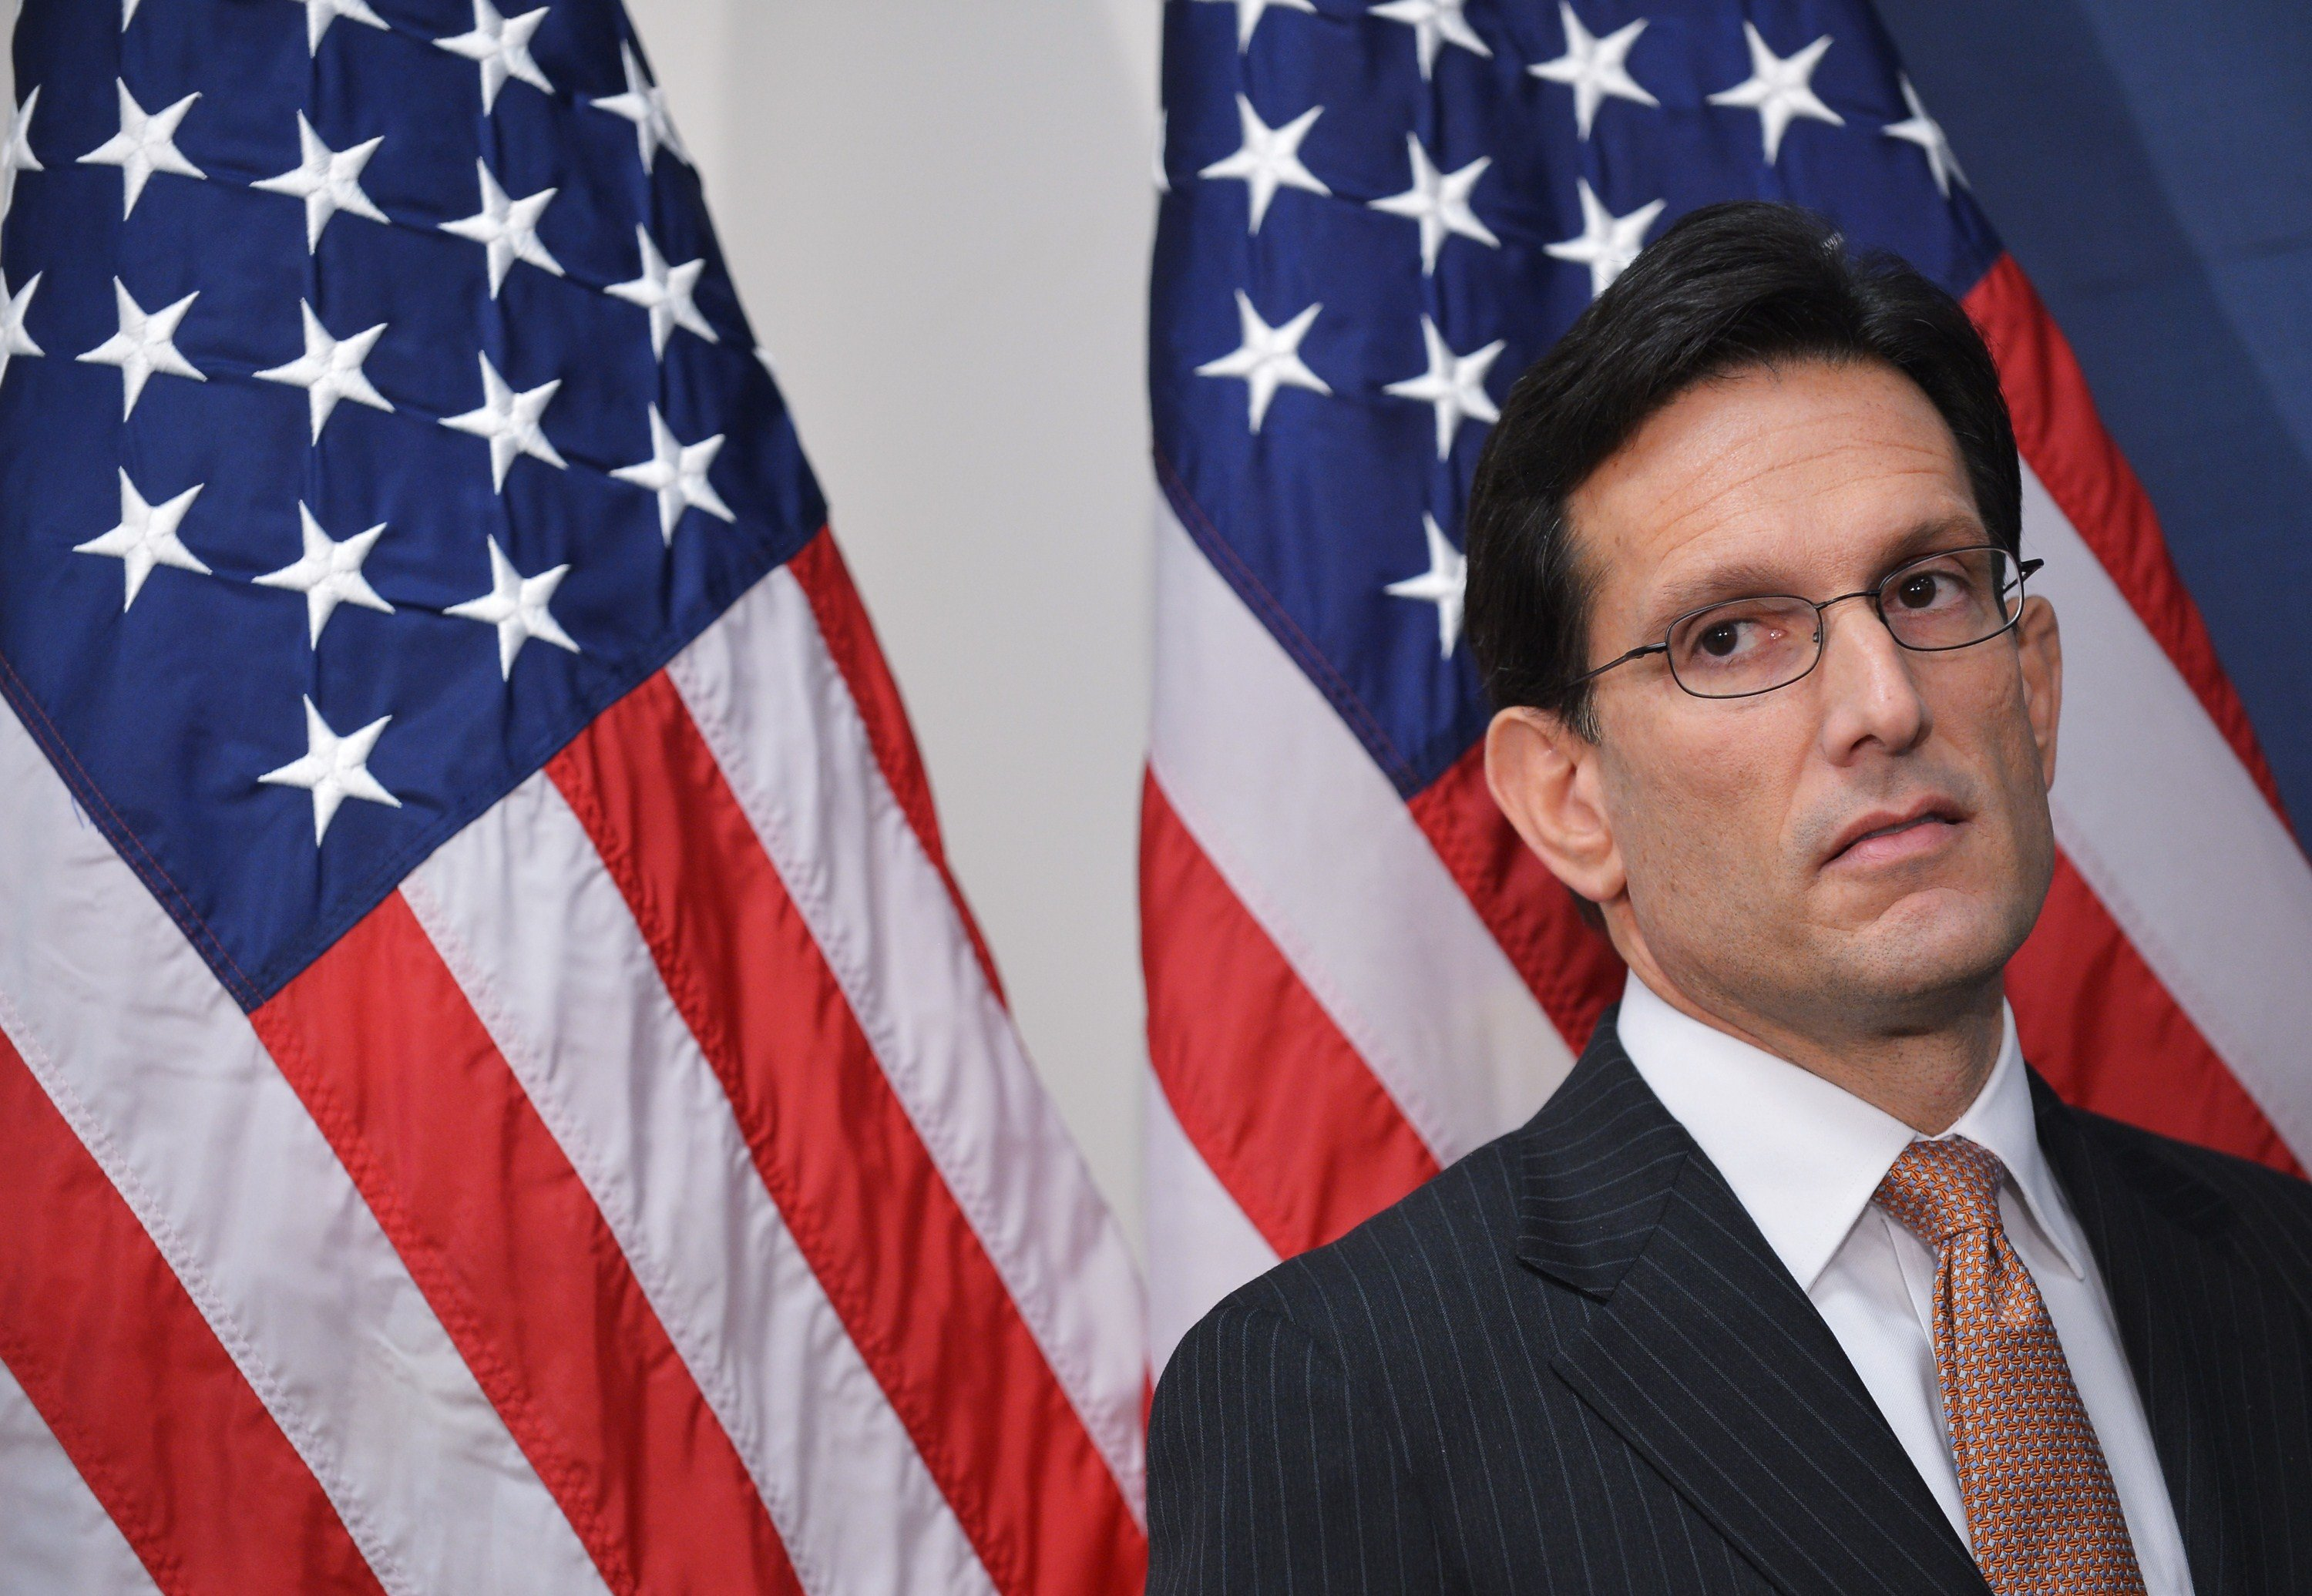 Eric Cantor listening to a speaker during a press conference following a Republican Conference meeting at the US Capitol in Washington.